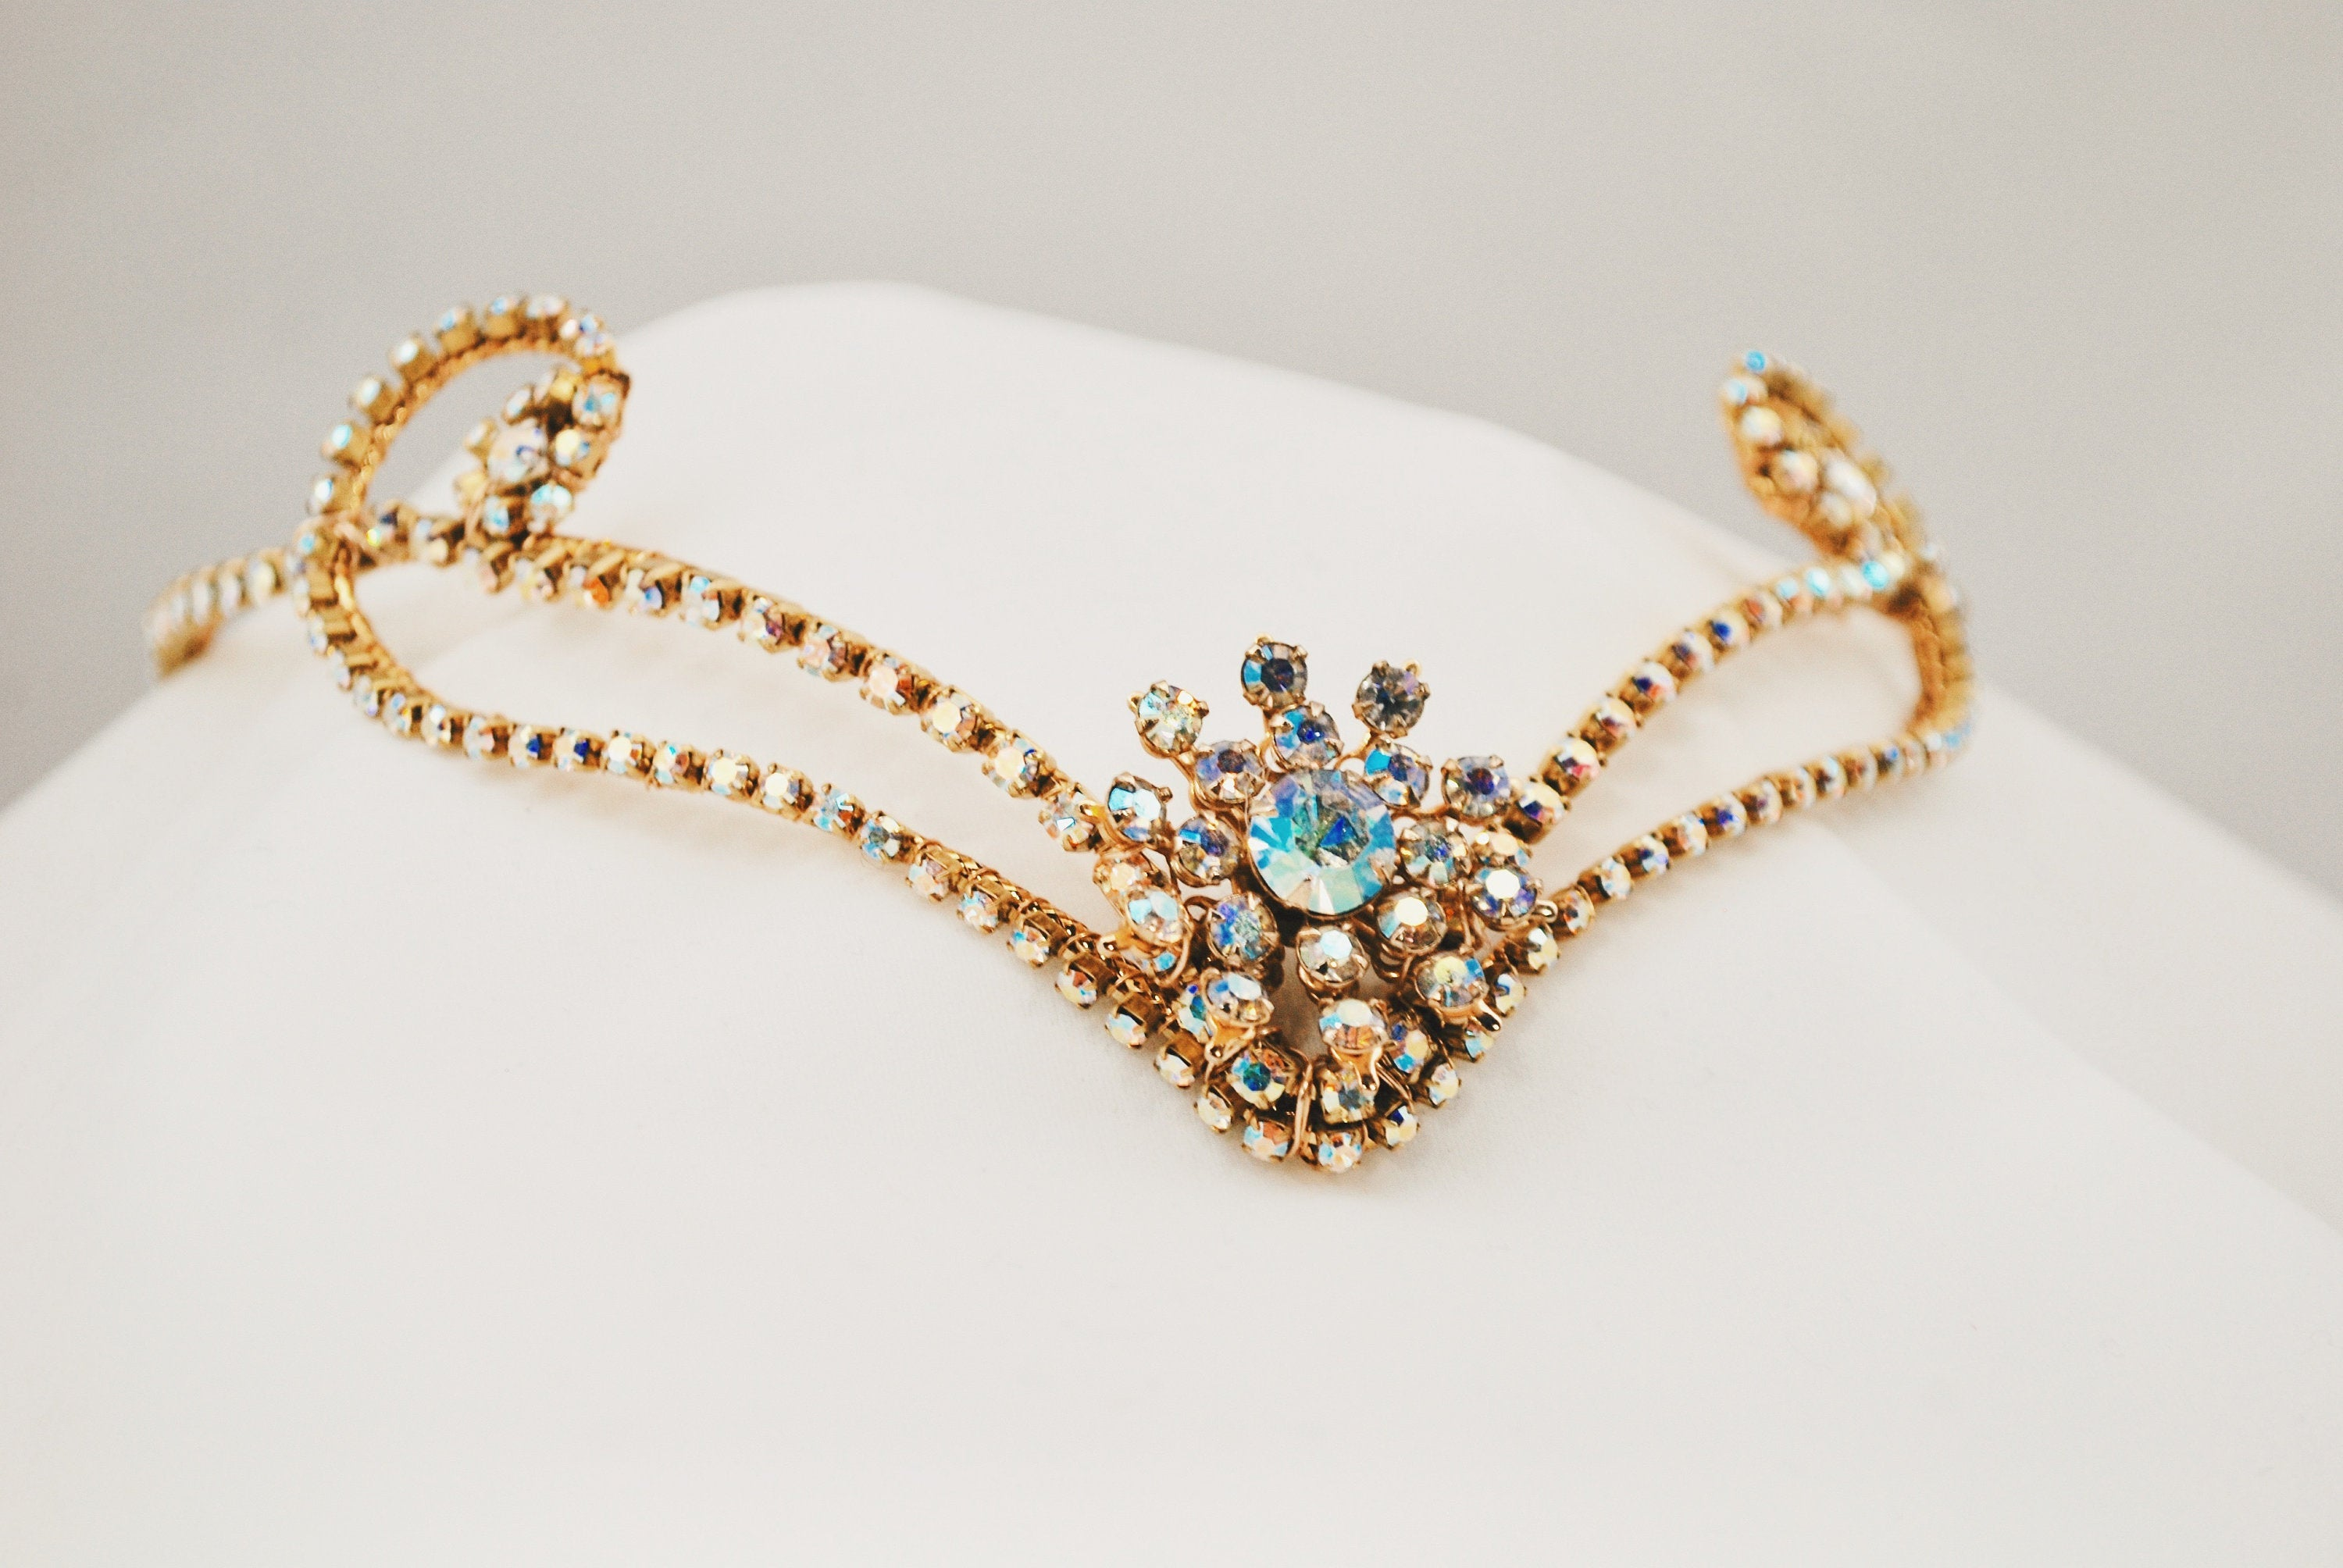 Golden Diadem with Vintage Jewel